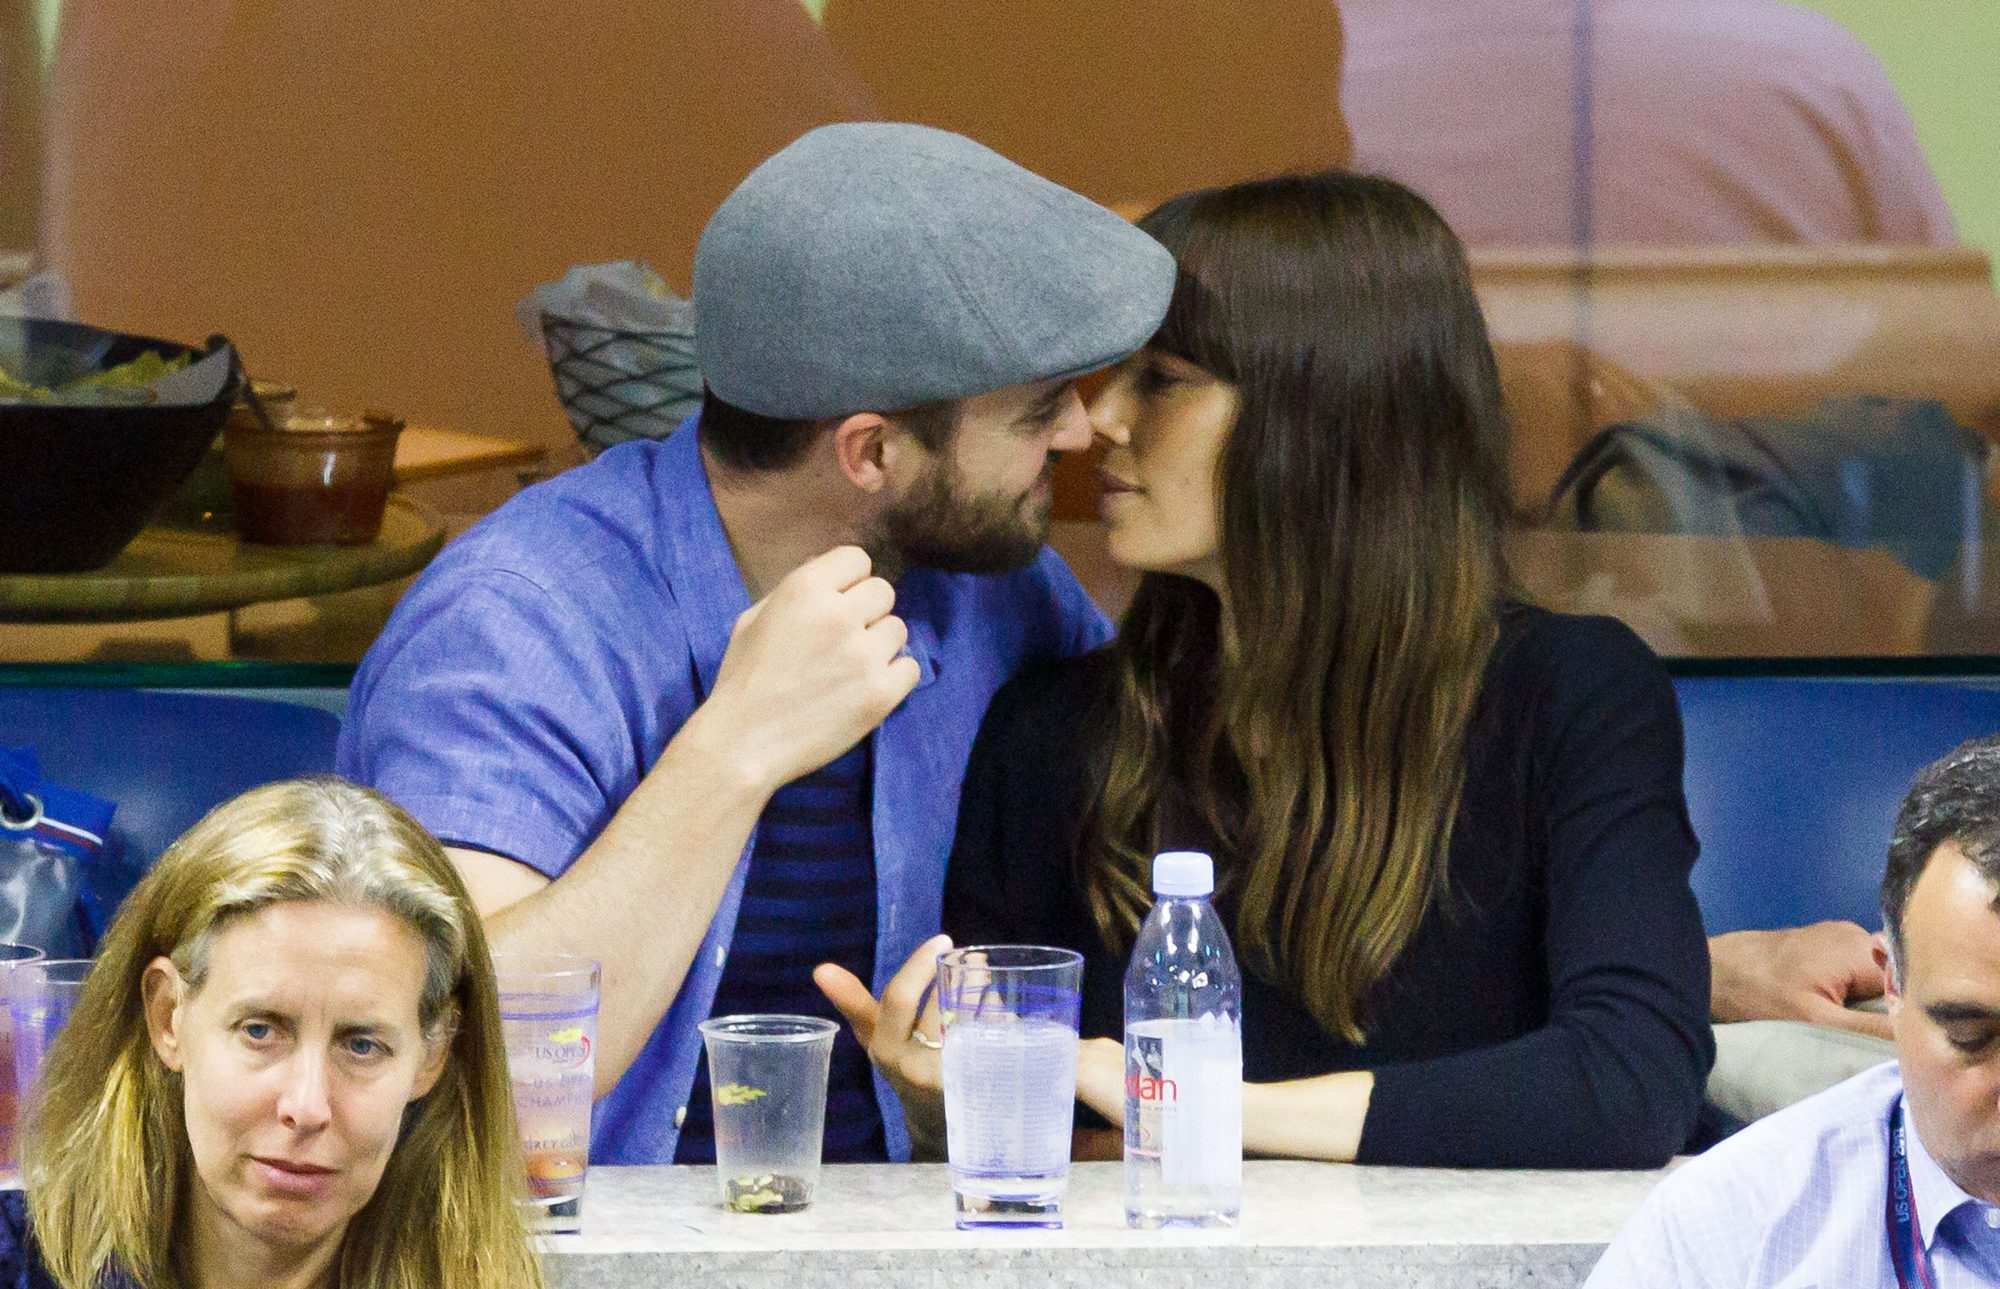 Justin-and-Jessica-kissing.jpg